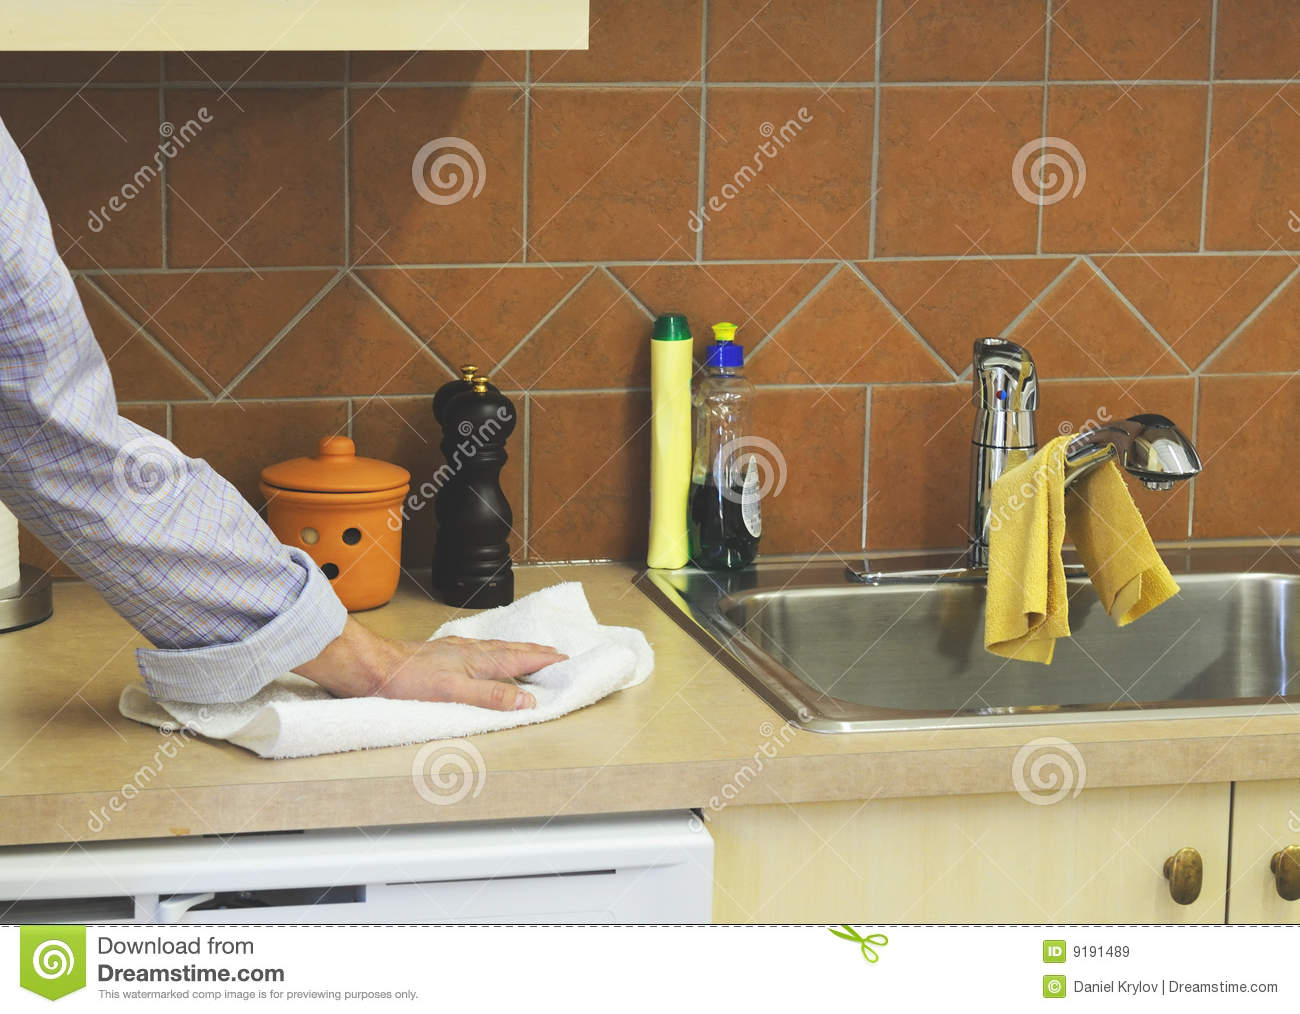 Cleaning The Countertop Royalty Free Stock Images.